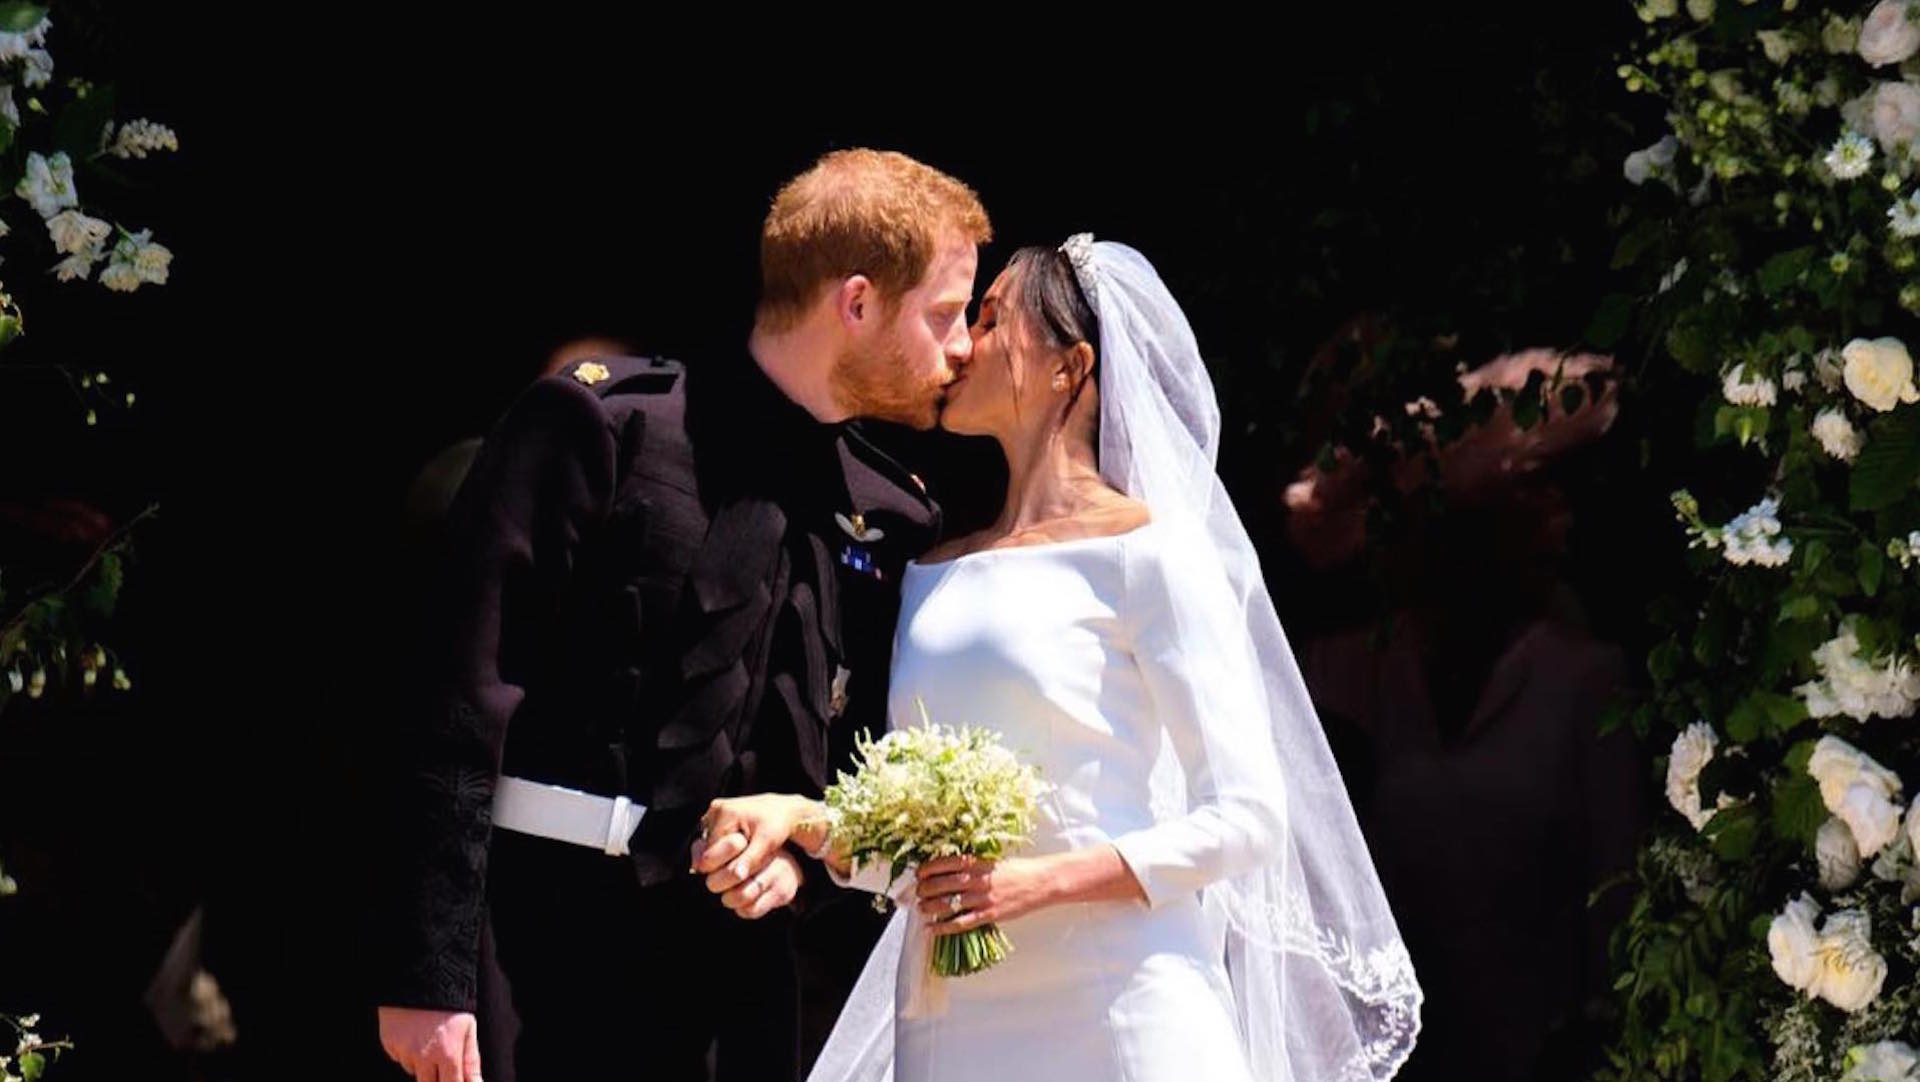 https://s3.amazonaws.com/arc-wordpress-client-uploads/infobae-wp/wp-content/uploads/2018/05/19181315/GENTE-Boda-real-primer-beso-principe-harry-y-meghan-markle2.jpg